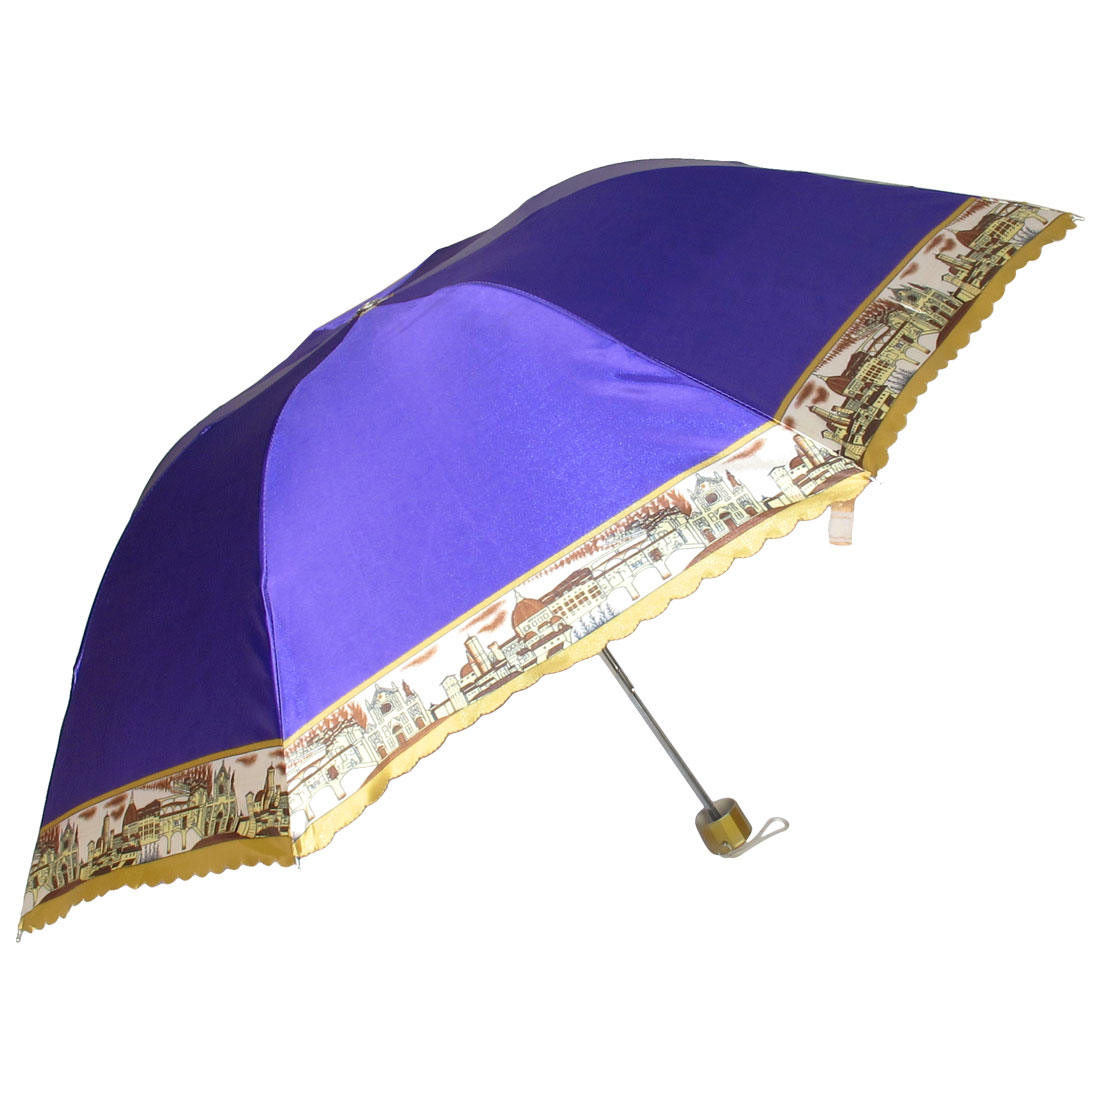 Outdoor Handy Foldable Purple Nylon Western Town Print Rain Sun Umbrella